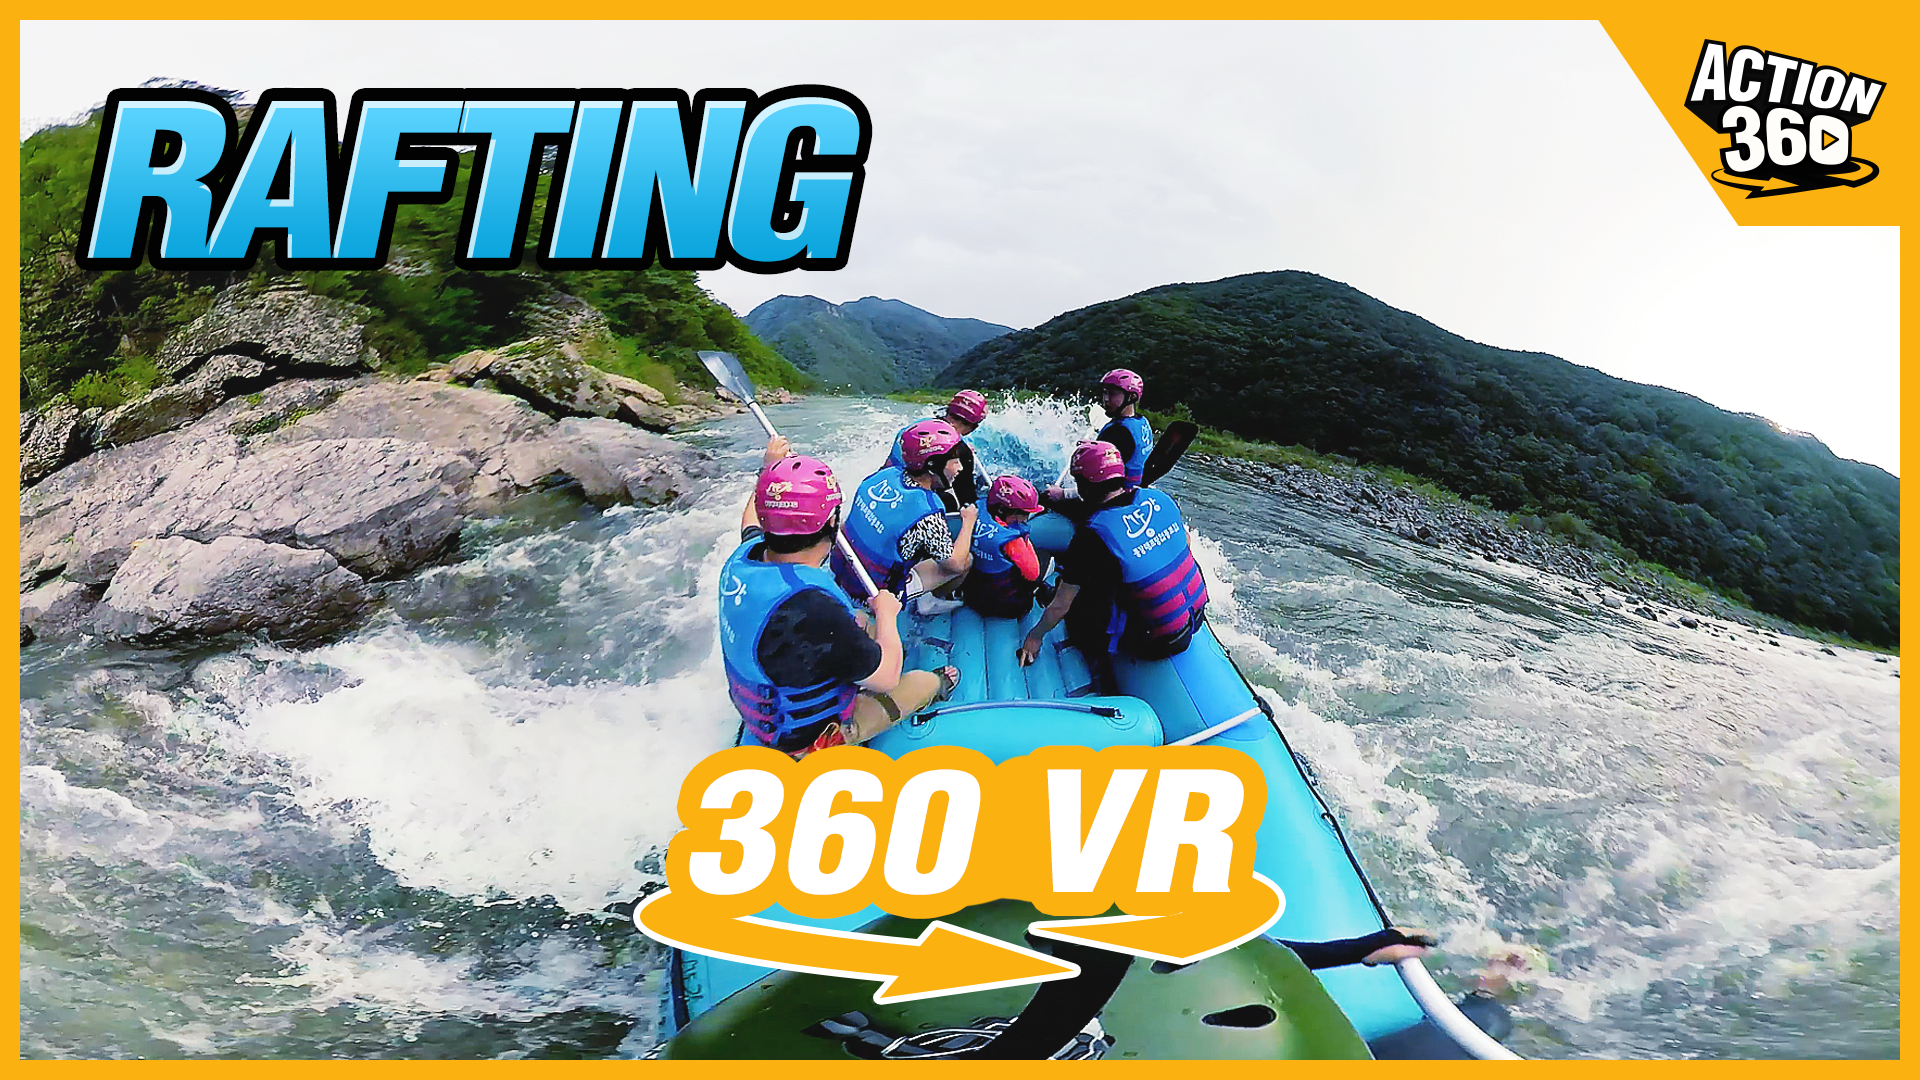 Rafting - The thrilling flow of water! Breathtaking regions! Exhi...